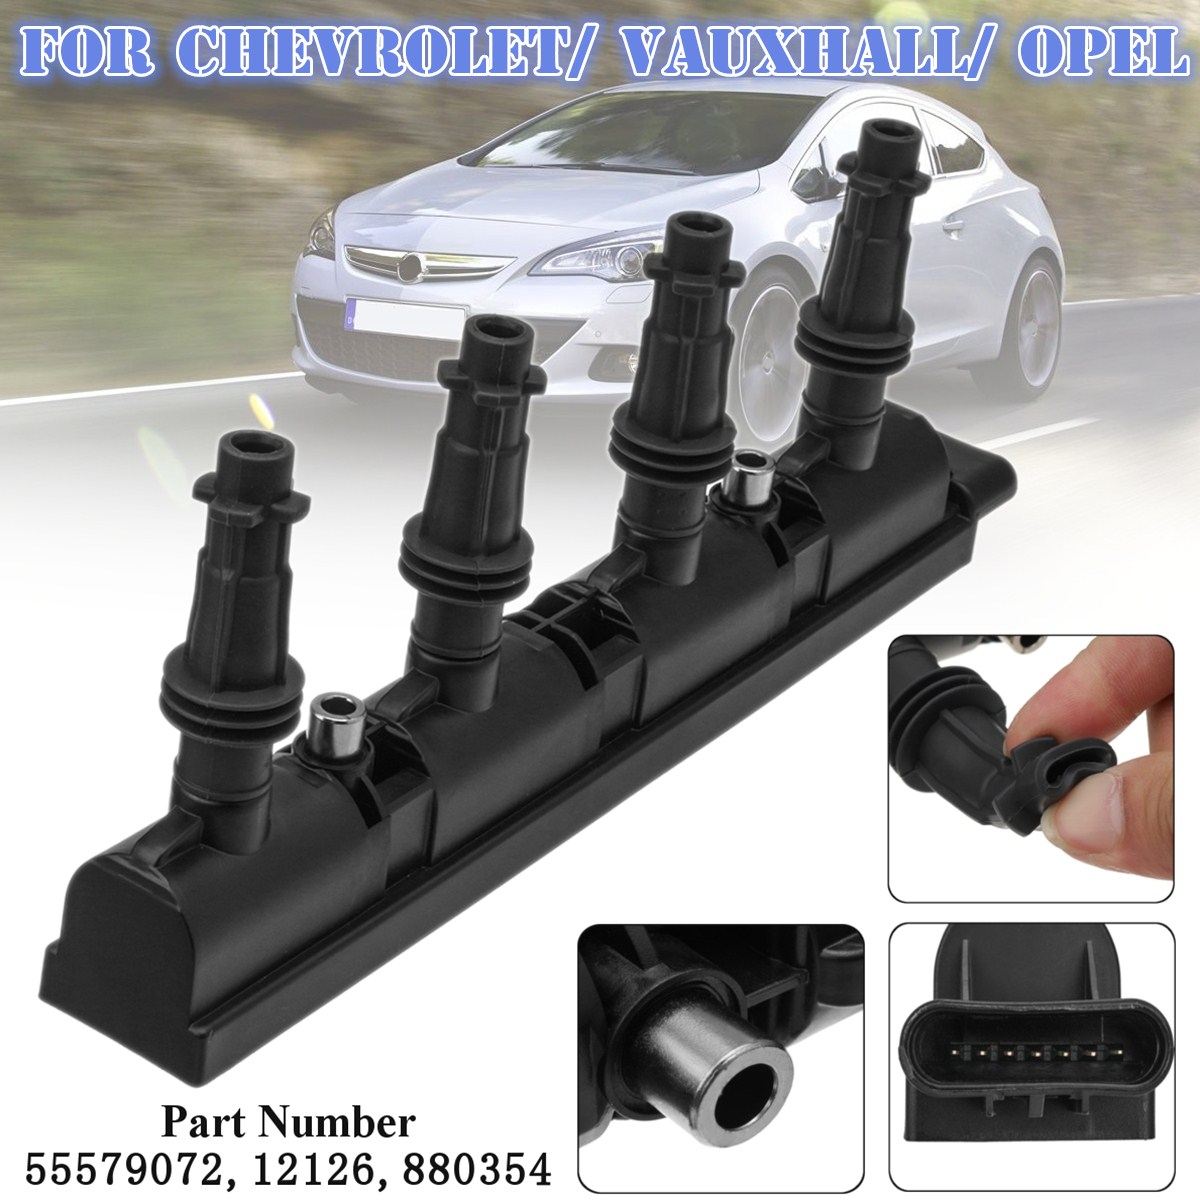 Car Ignition Coil for Chevrolet Orlando Aveo/Cruze Trax J309 T300 J305 J308 1208096 1208093 <font><b>55579072</b></font> 55573735 1208092 55575499 image